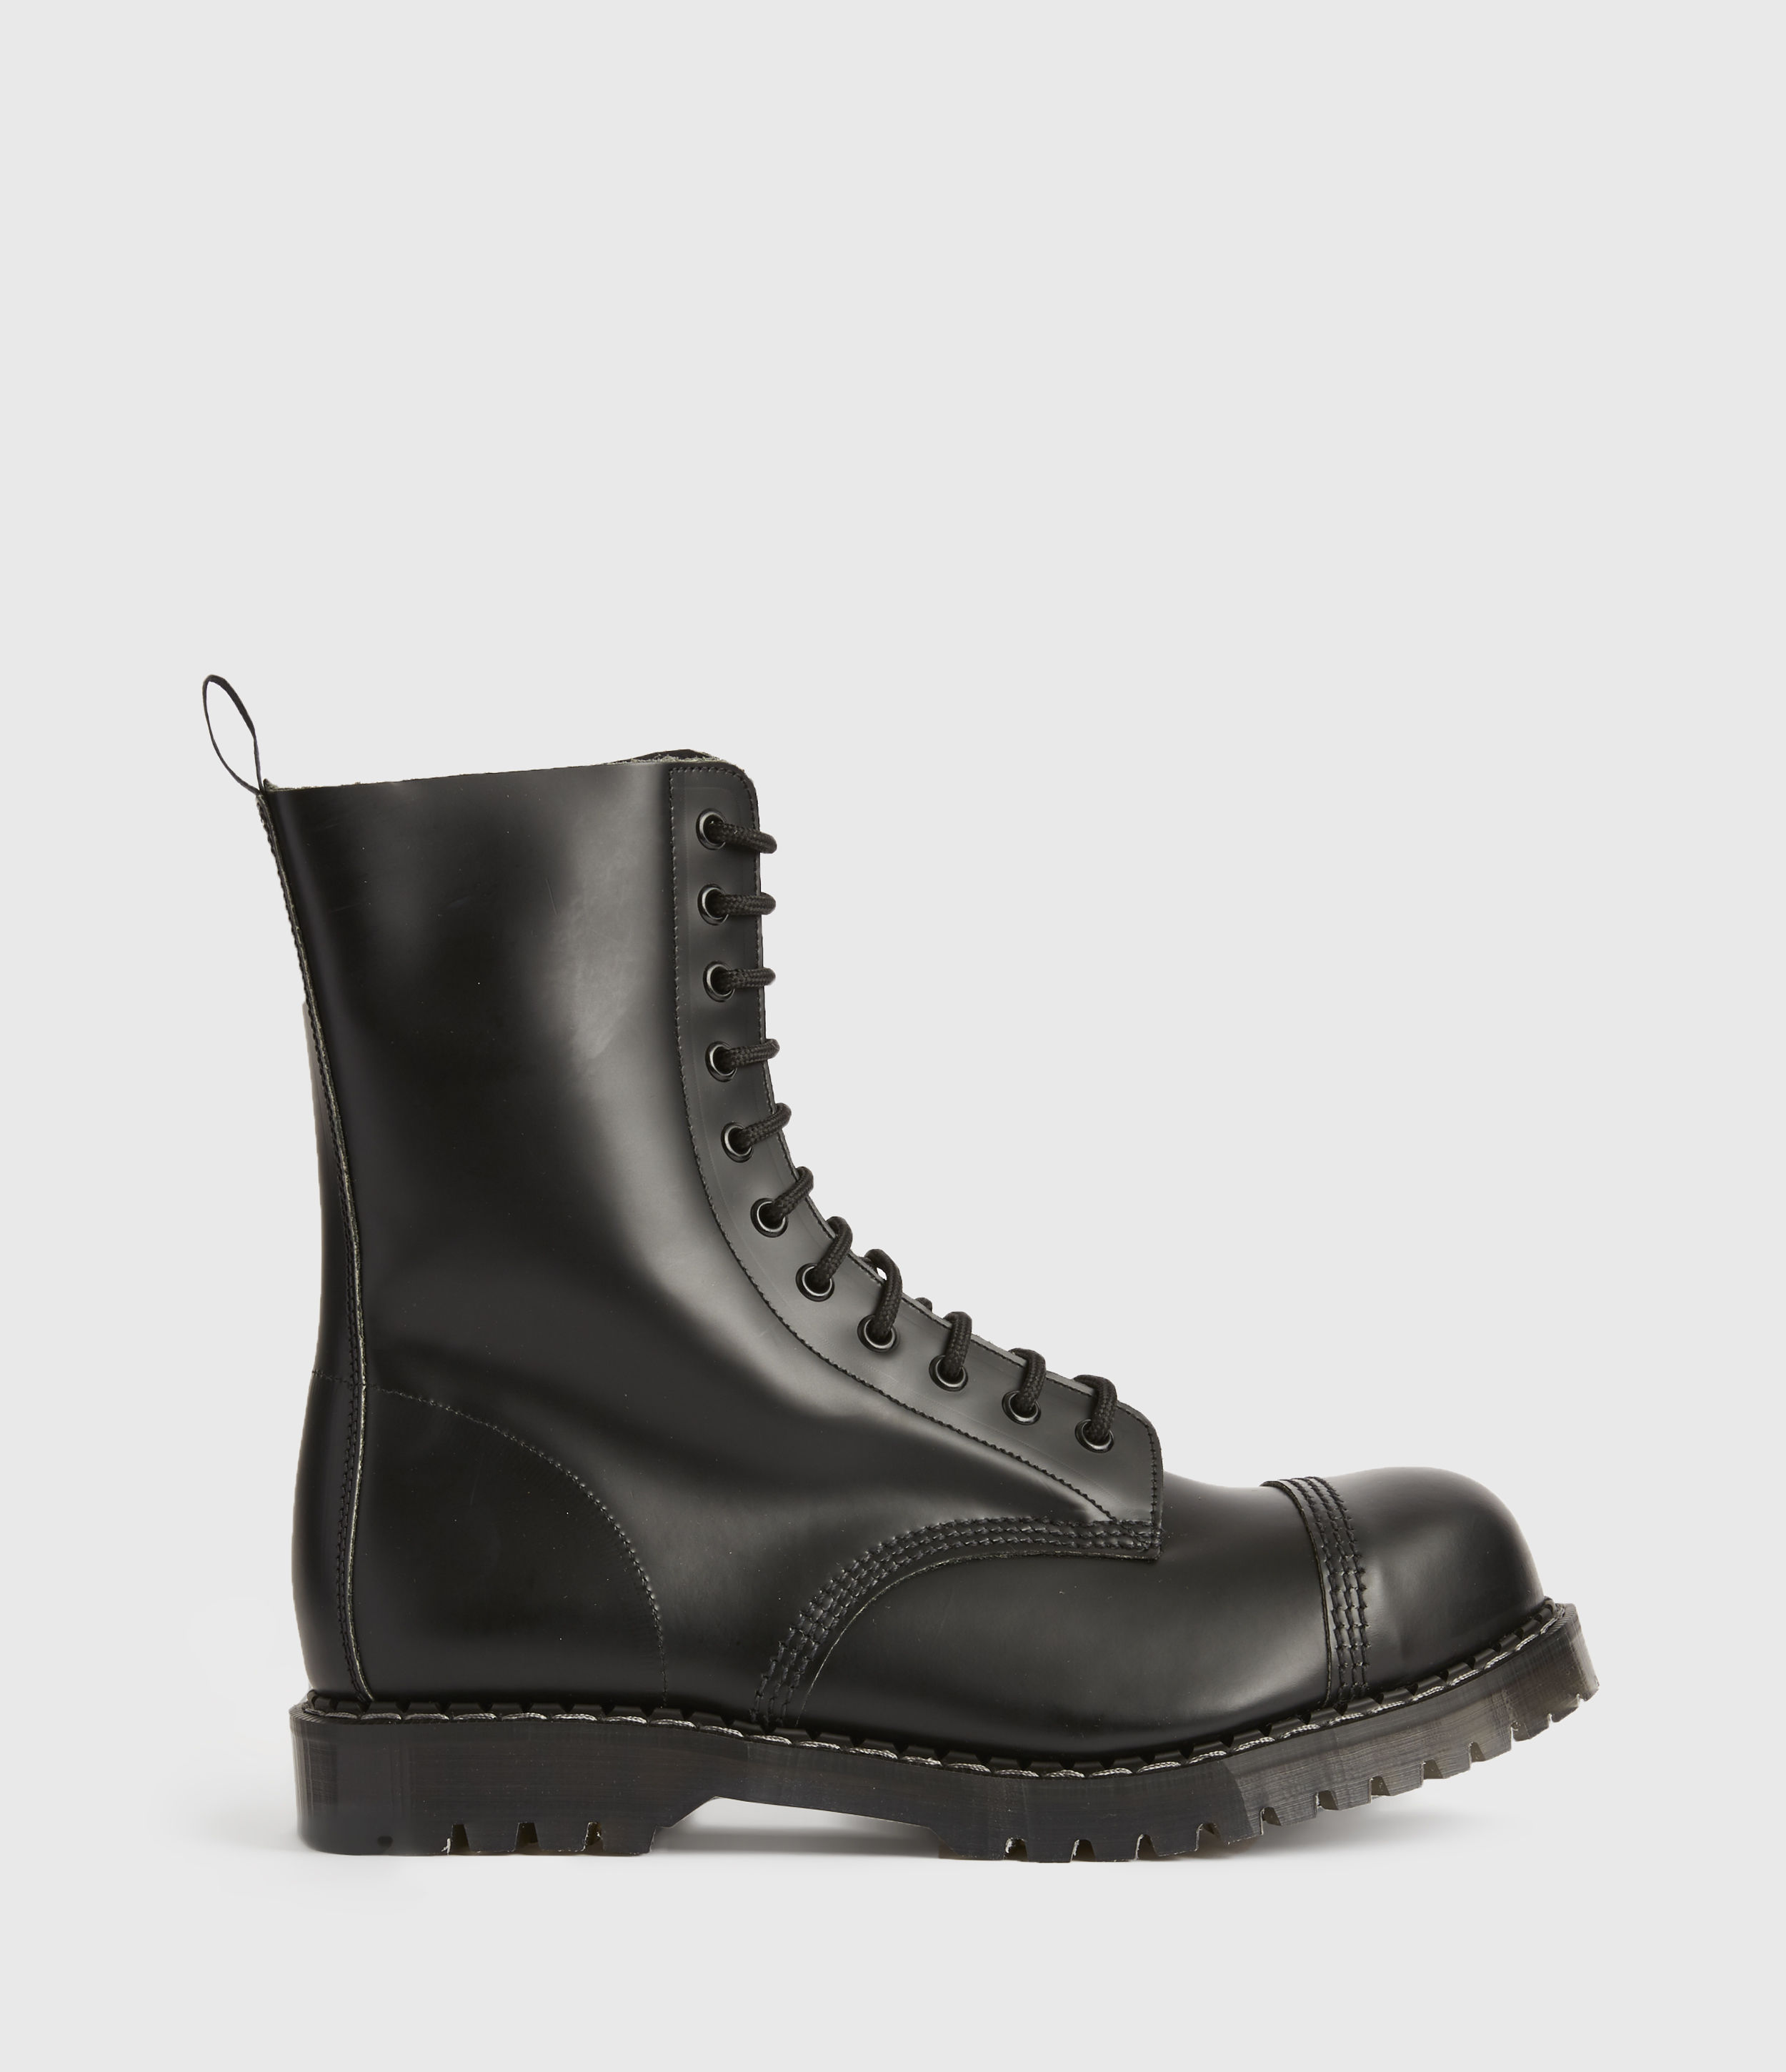 AllSaints Mens River Leather Boots, Black, Size: UK 11/US 12/EU 45